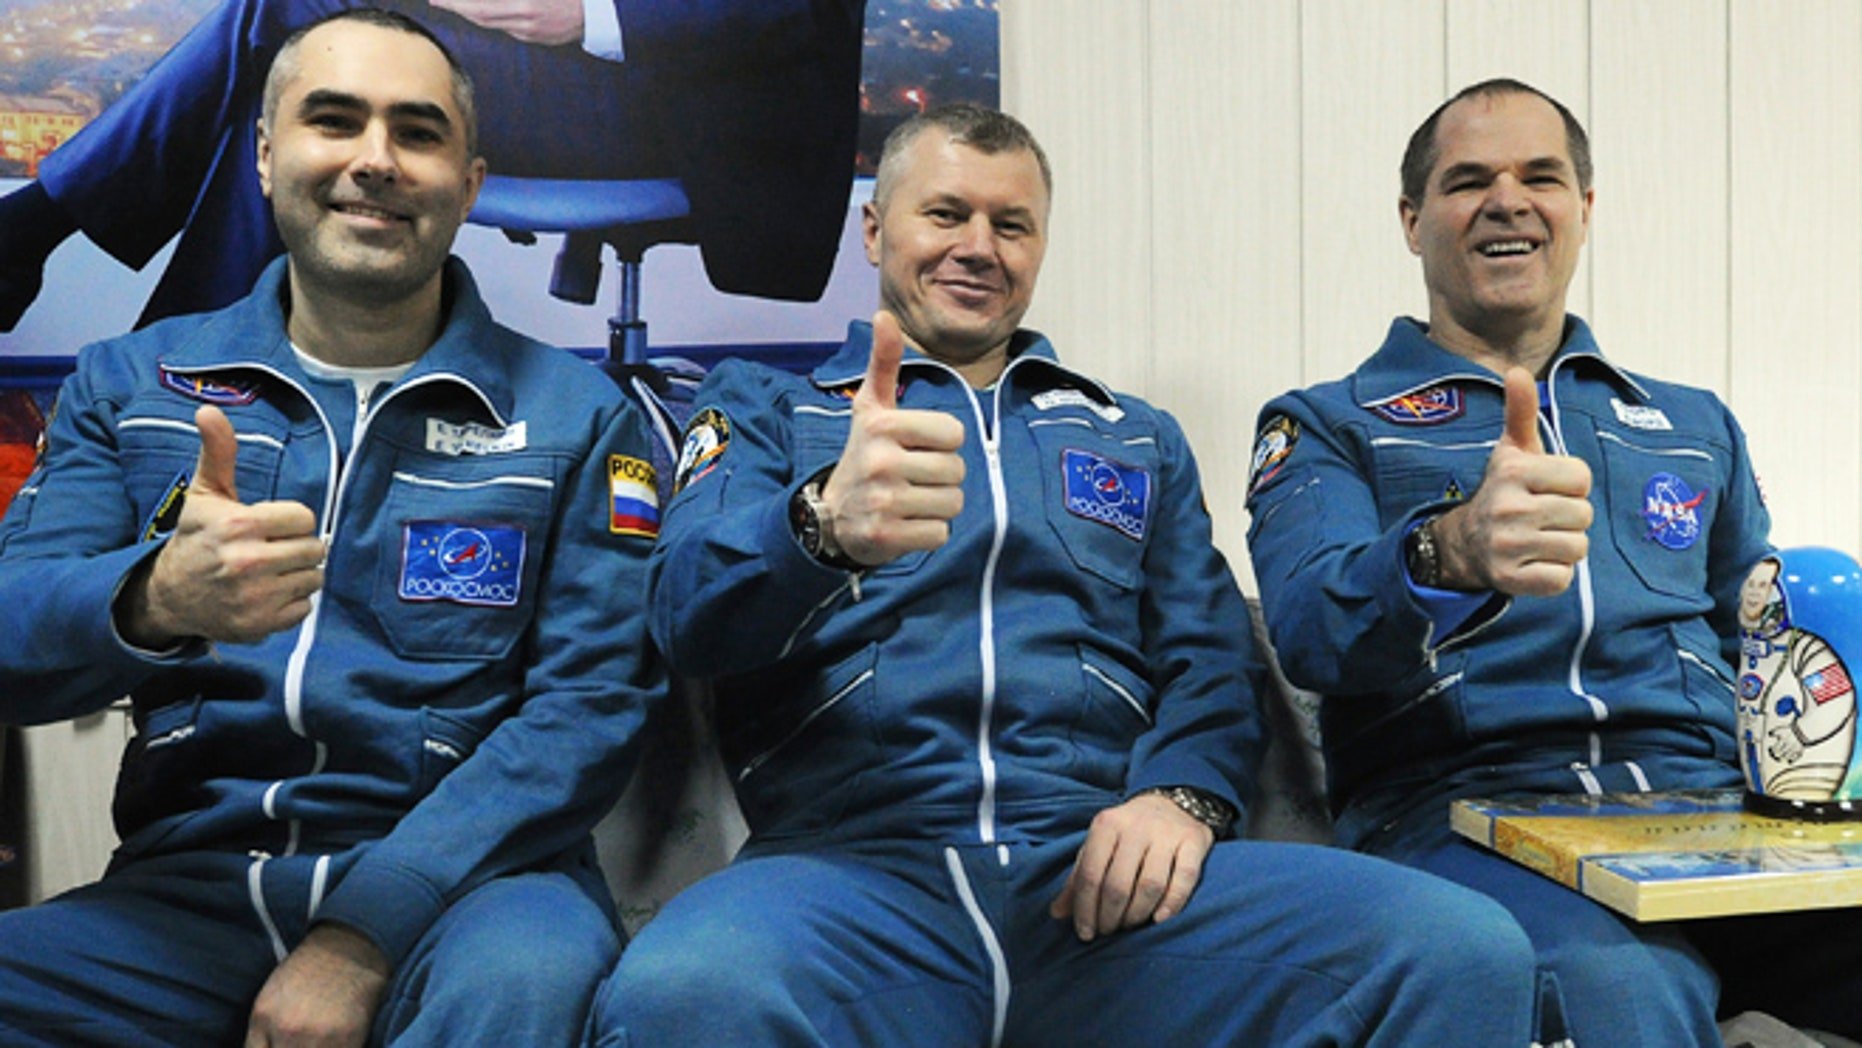 March 16, 2013: Russian cosmonauts Yevgeny Tarelkin, left, Oleg Novitsky, center, and NASA's astronaut Kevin Ford pose for a photo at the airport of the Kazakh city of Kostanai after their landing in northern Kazakhstan.